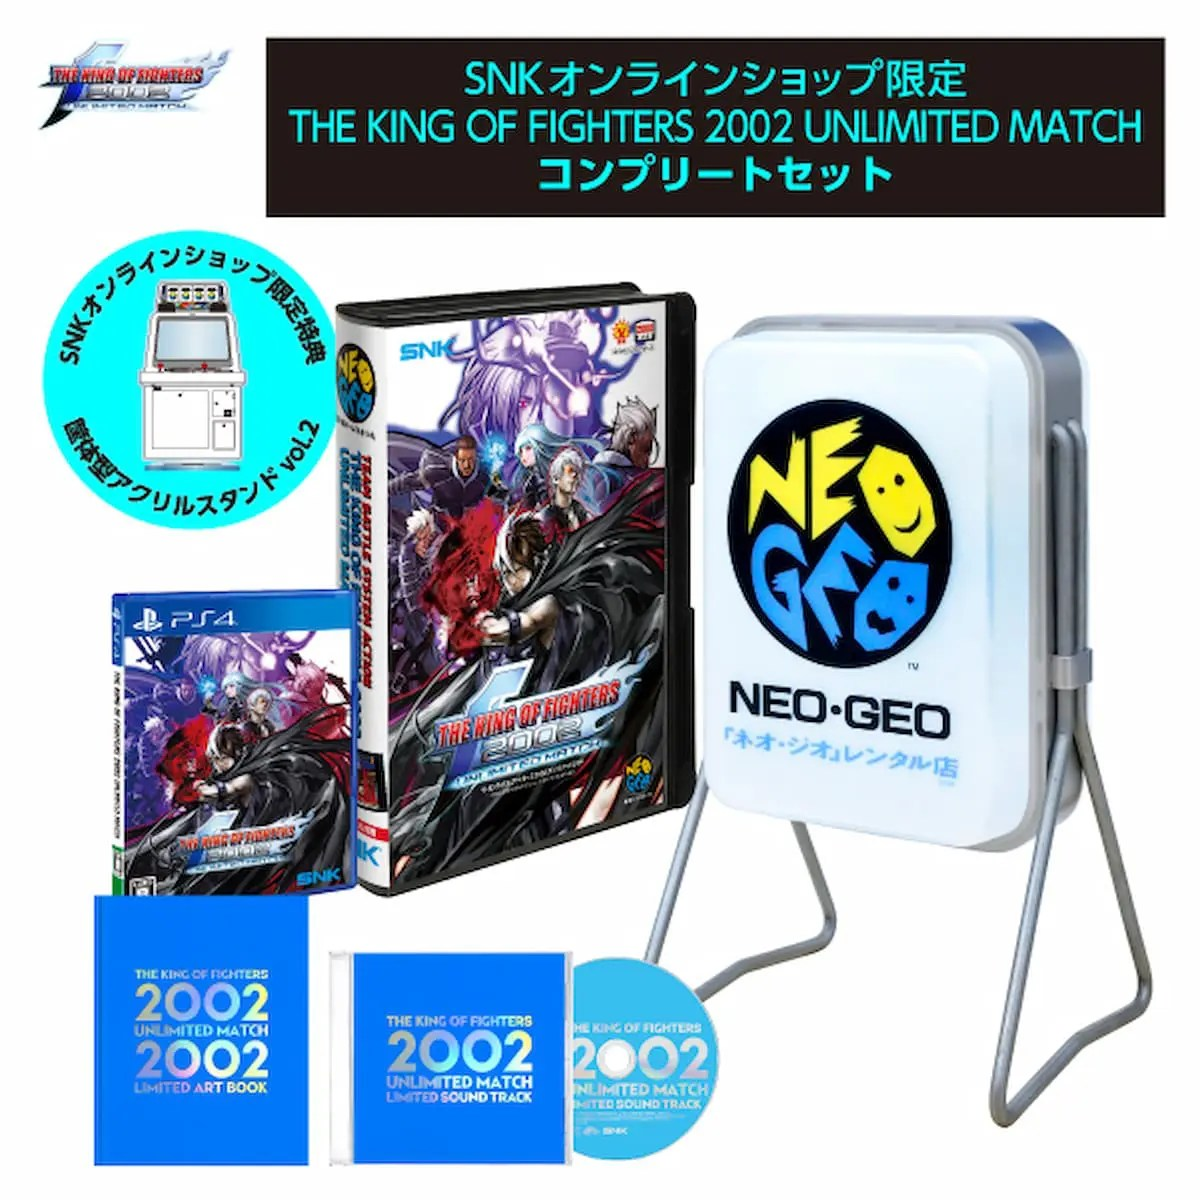 THE KING OF FIGHTERS 2002 UNLIMITED MATCH コンプリートセット - PS4